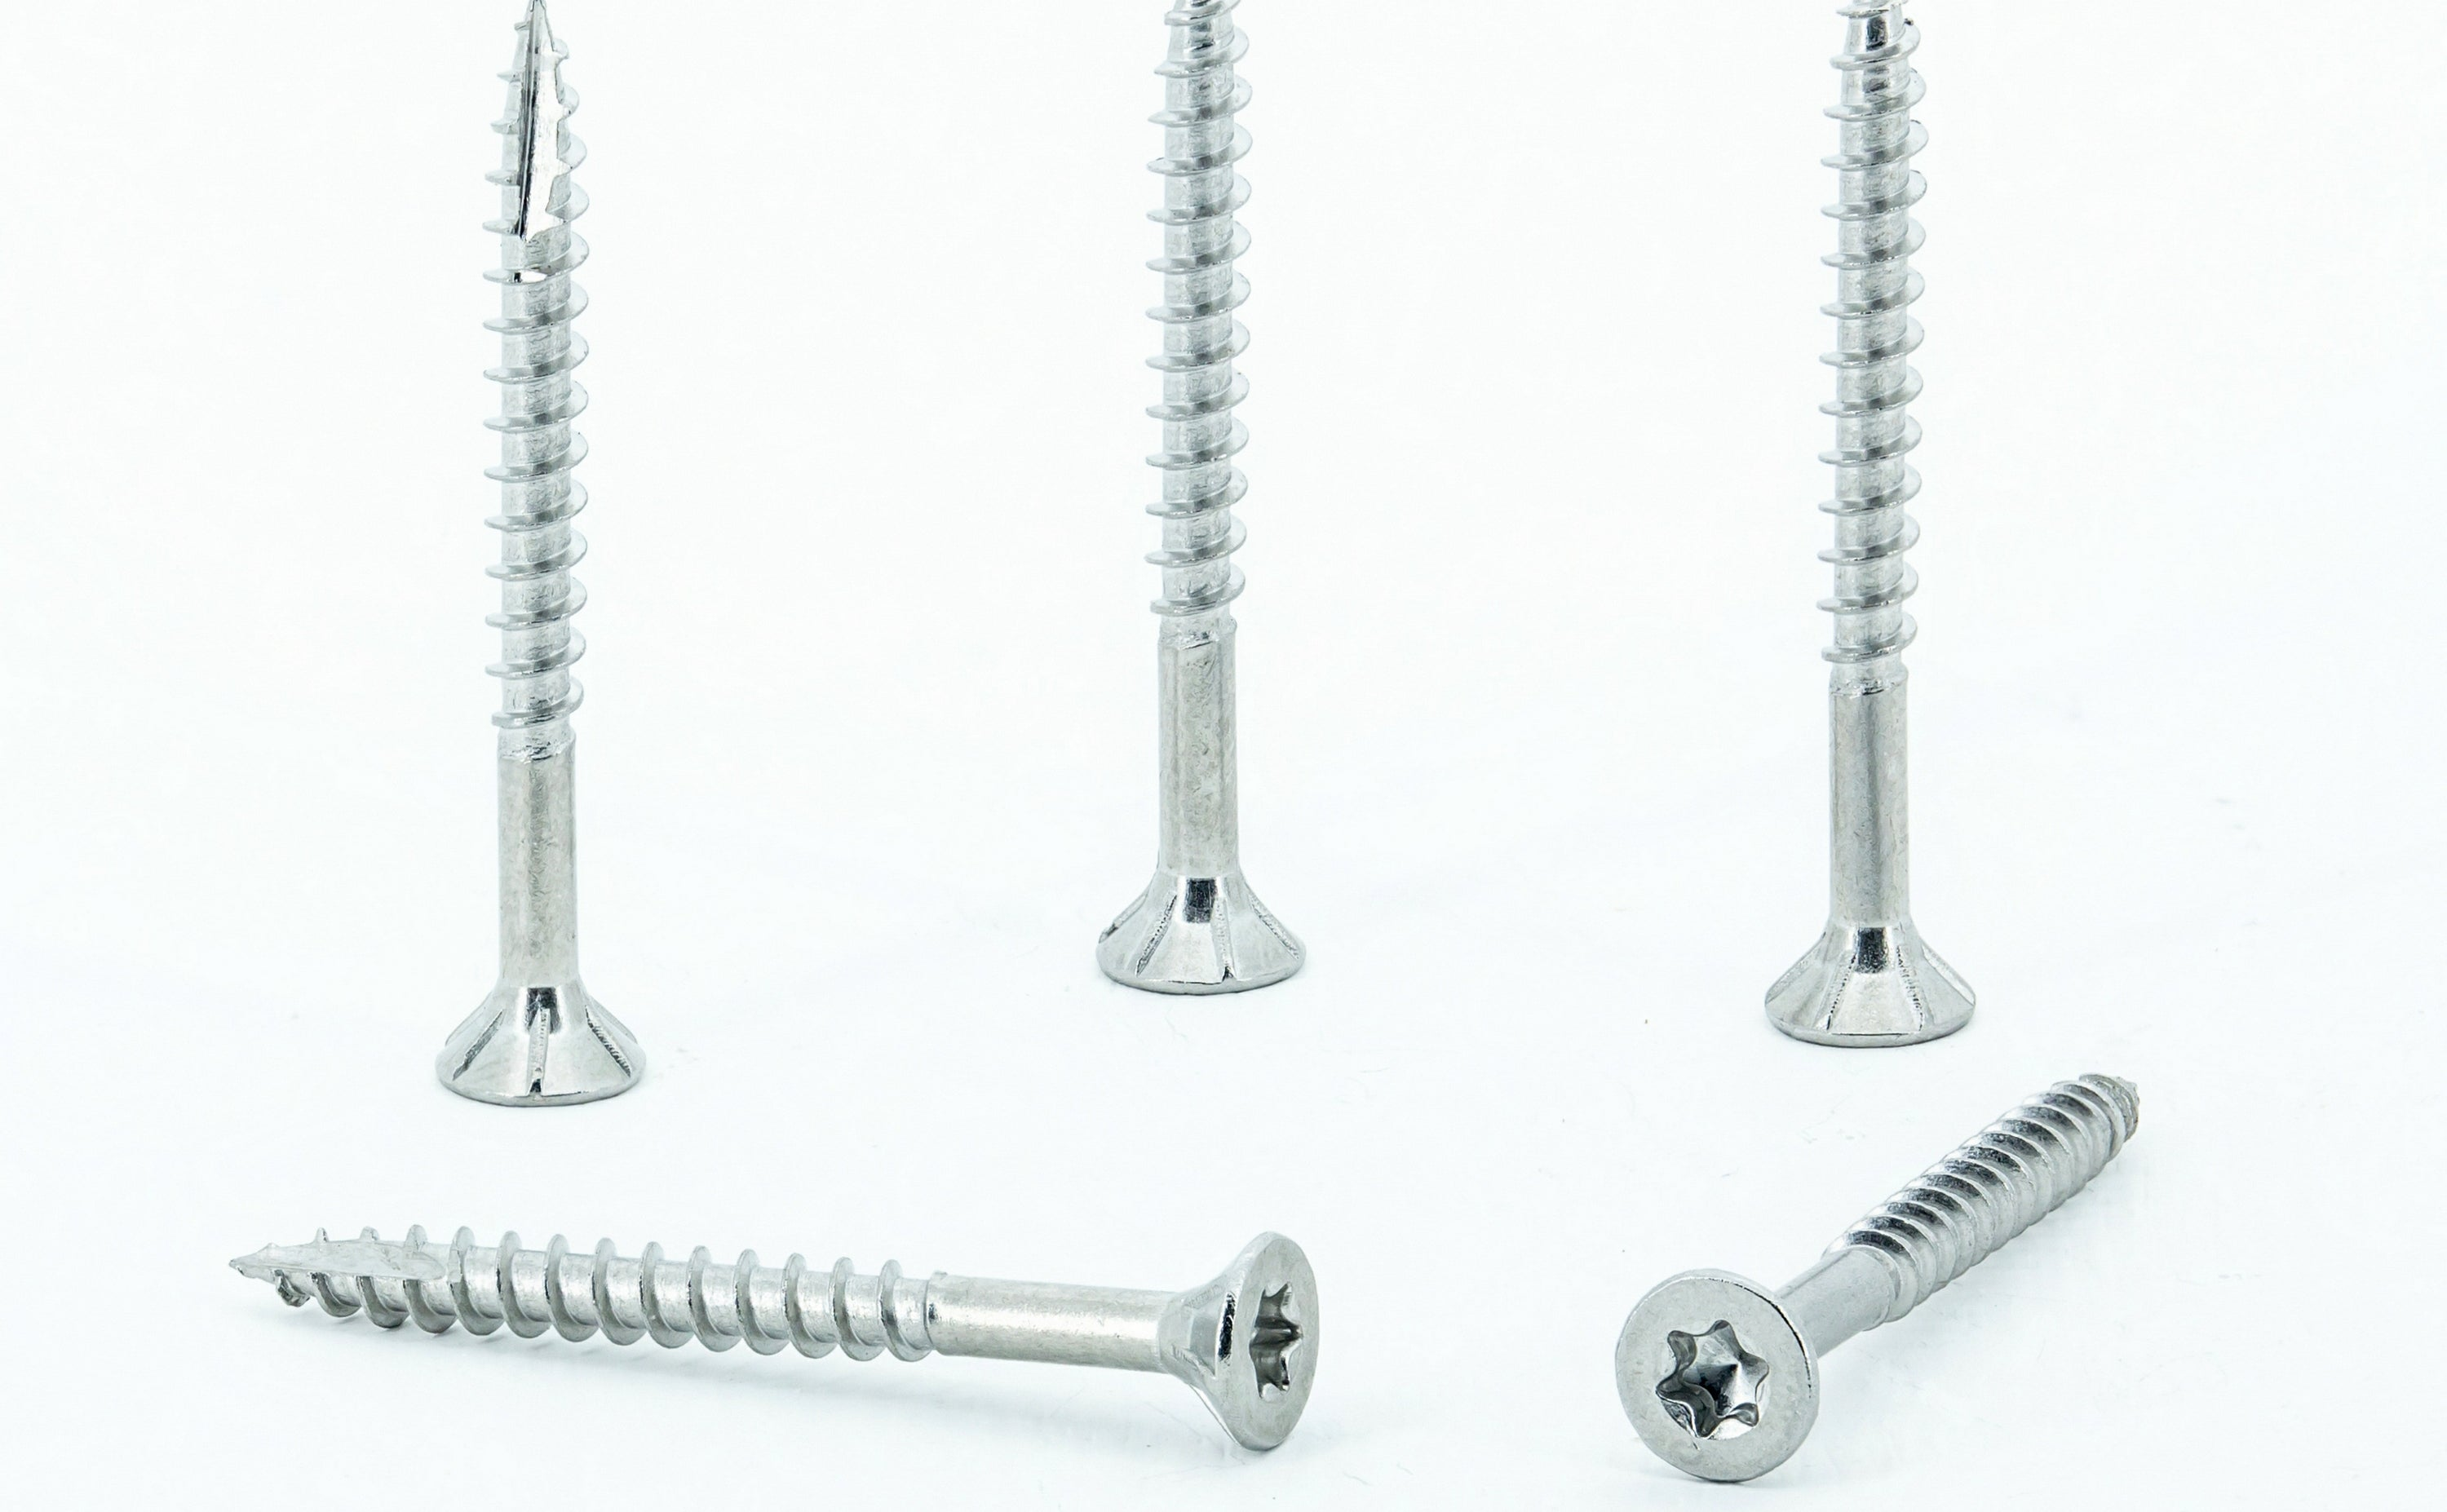 Stainless Steel Screws - Made in Taiwan